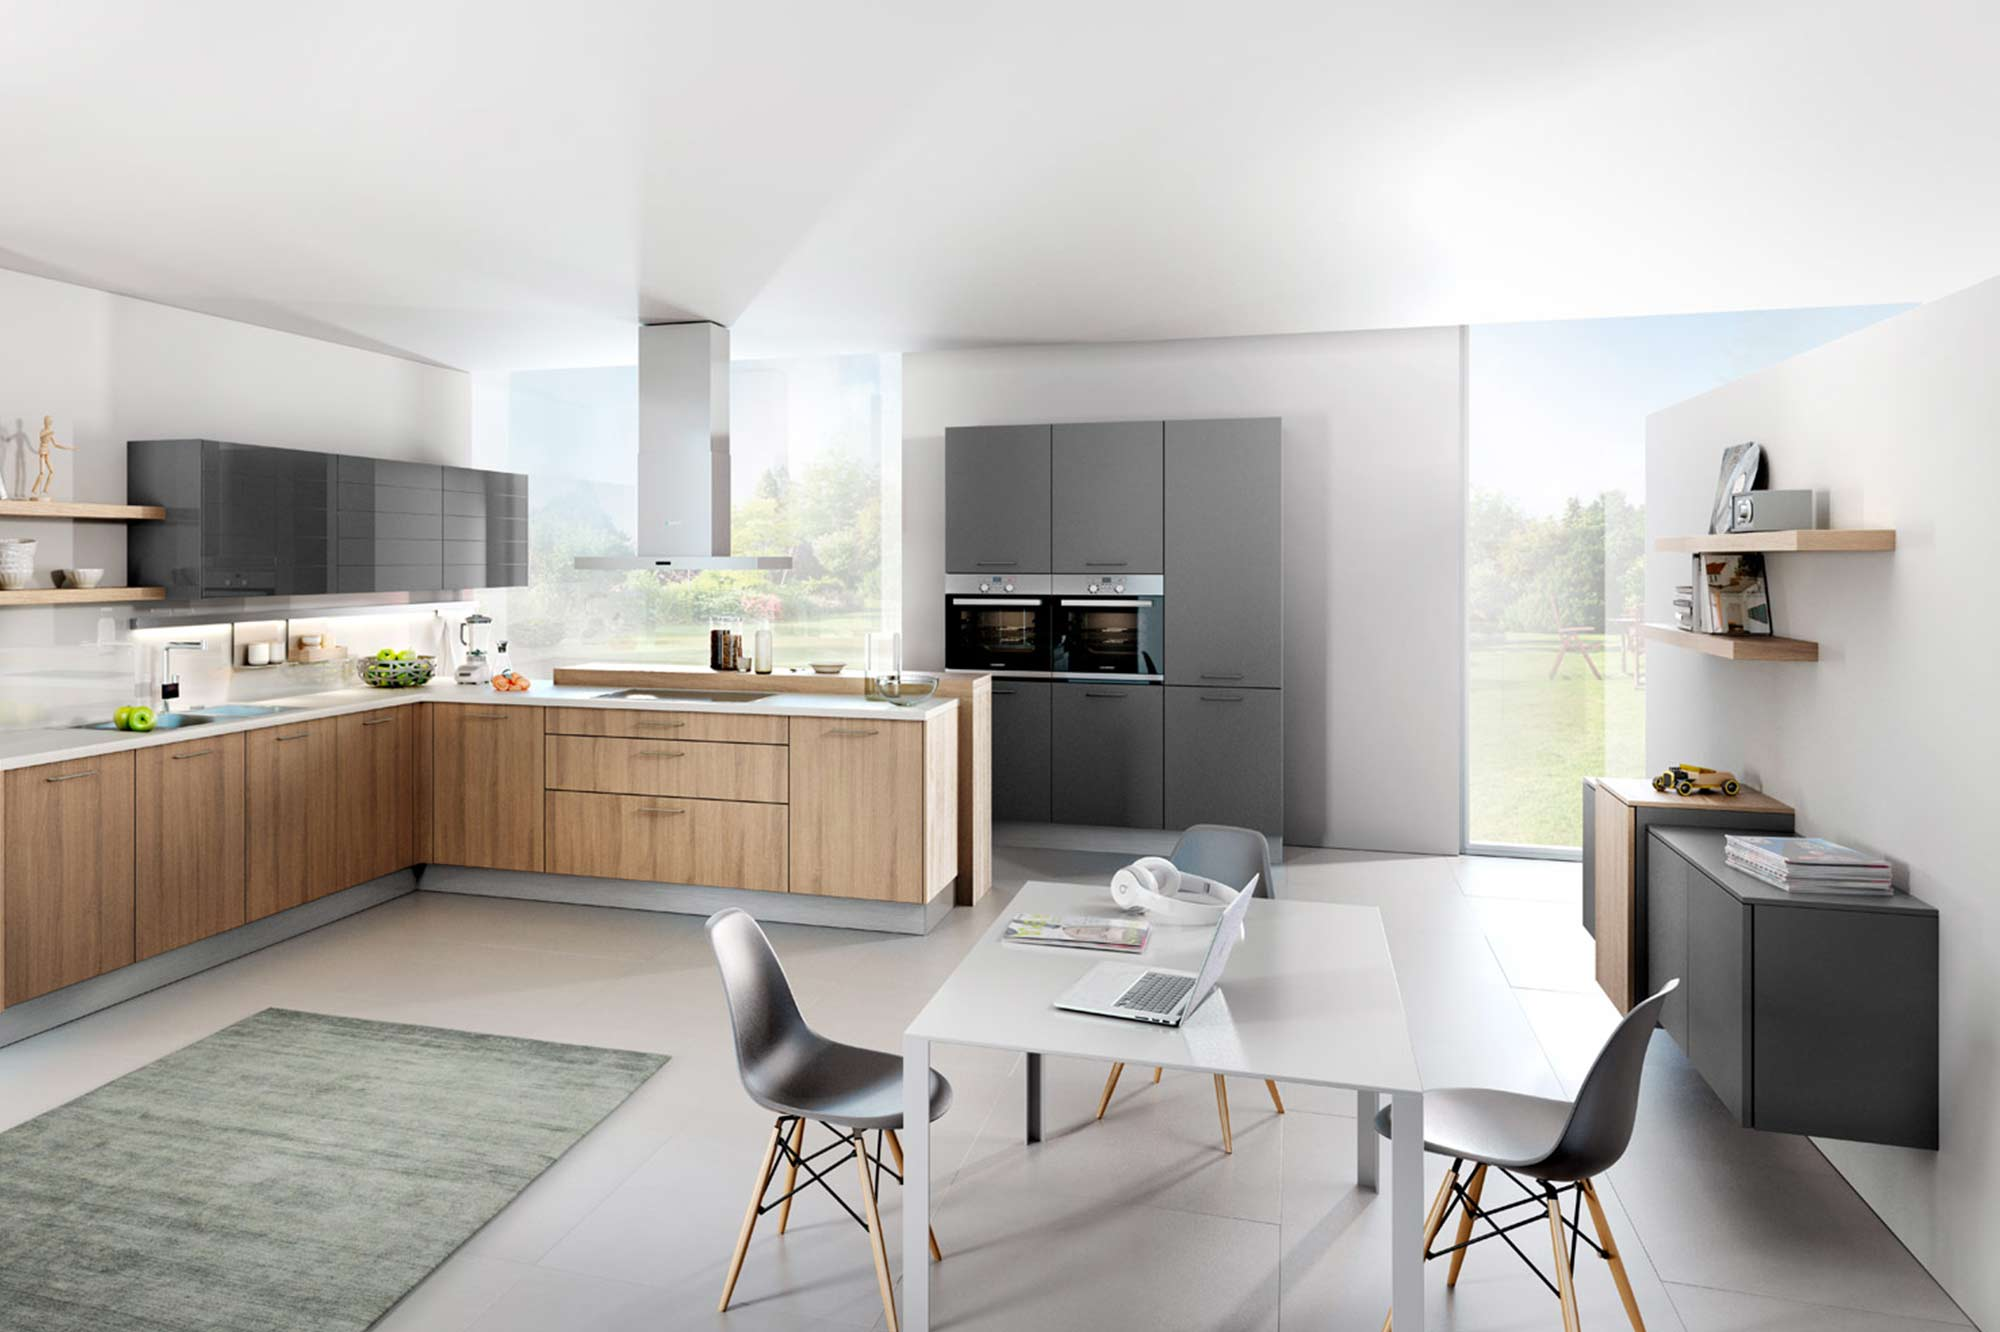 Charming Get Free High Quality HD Wallpapers German Kitchens Glasgow Direct